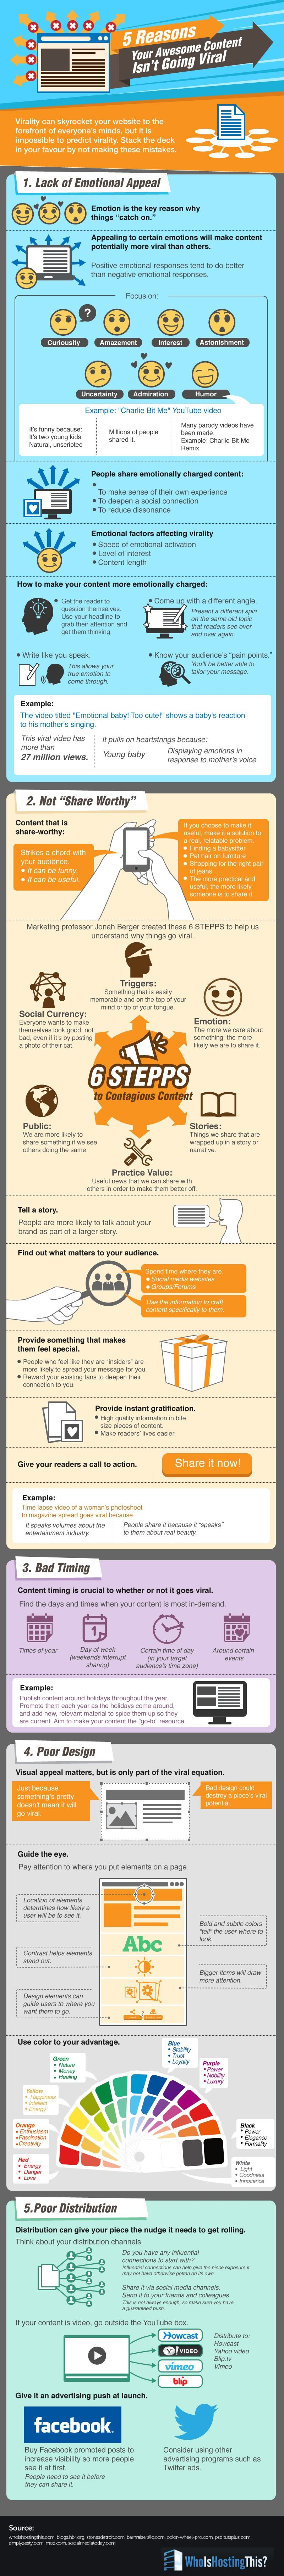 5 Reasons Your Awesome Content Isn't Going Viral - #infographic